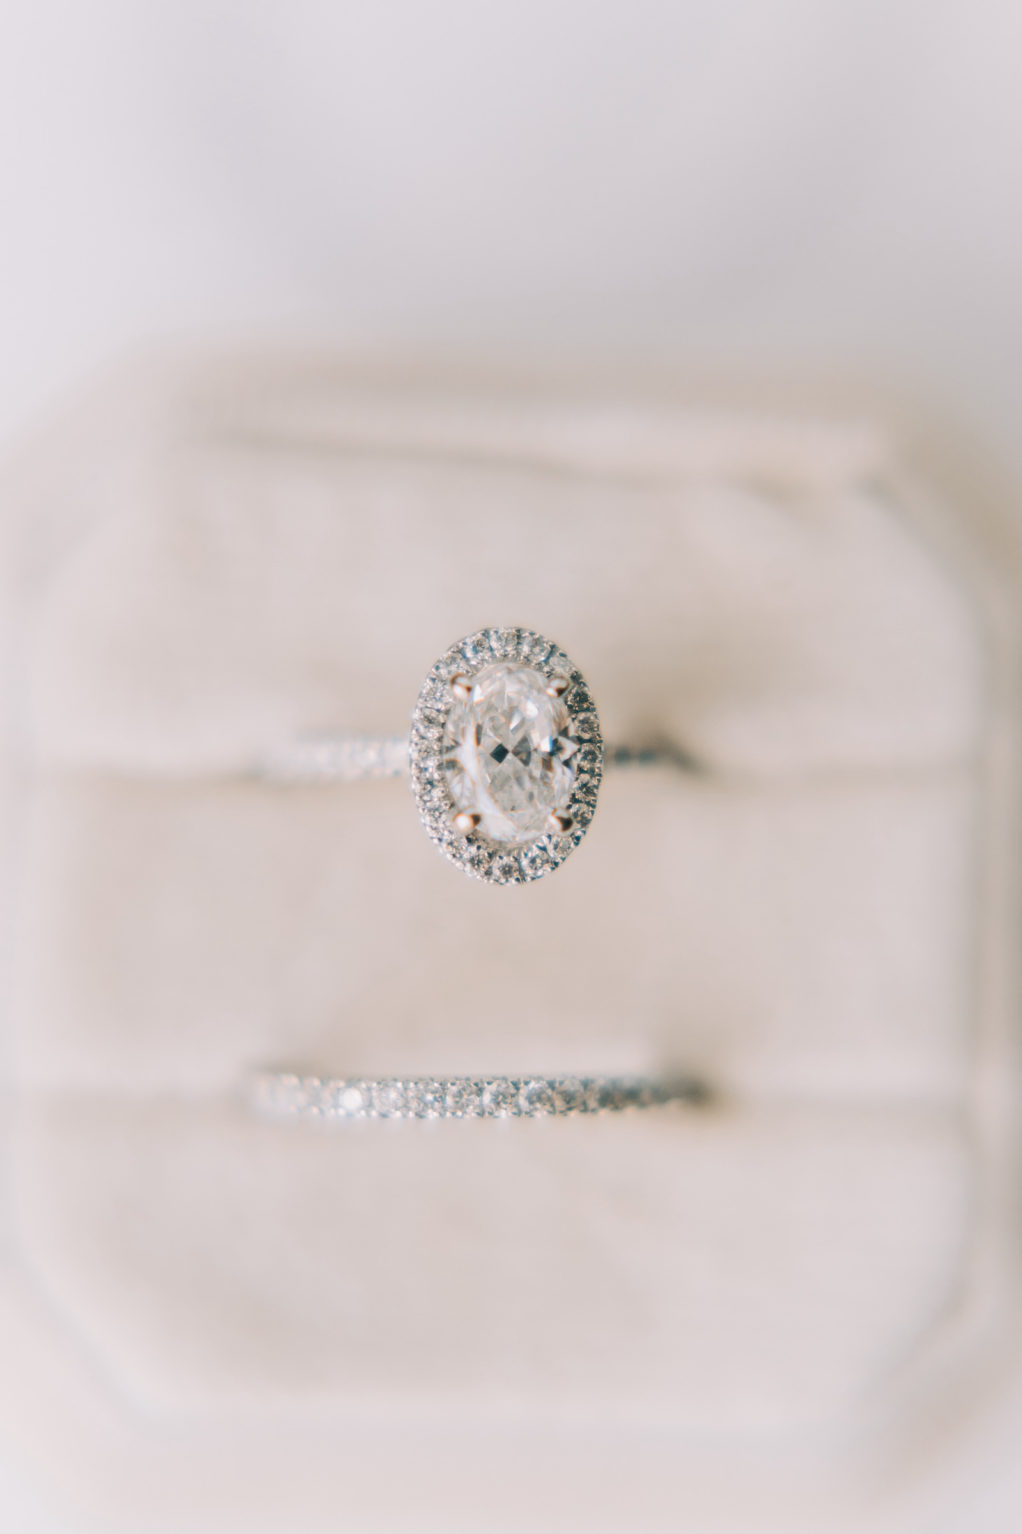 Oval with Halo Diamond Engagement Ring and Thin Diamond Wedding Band in Ivory Velvet Ring Box